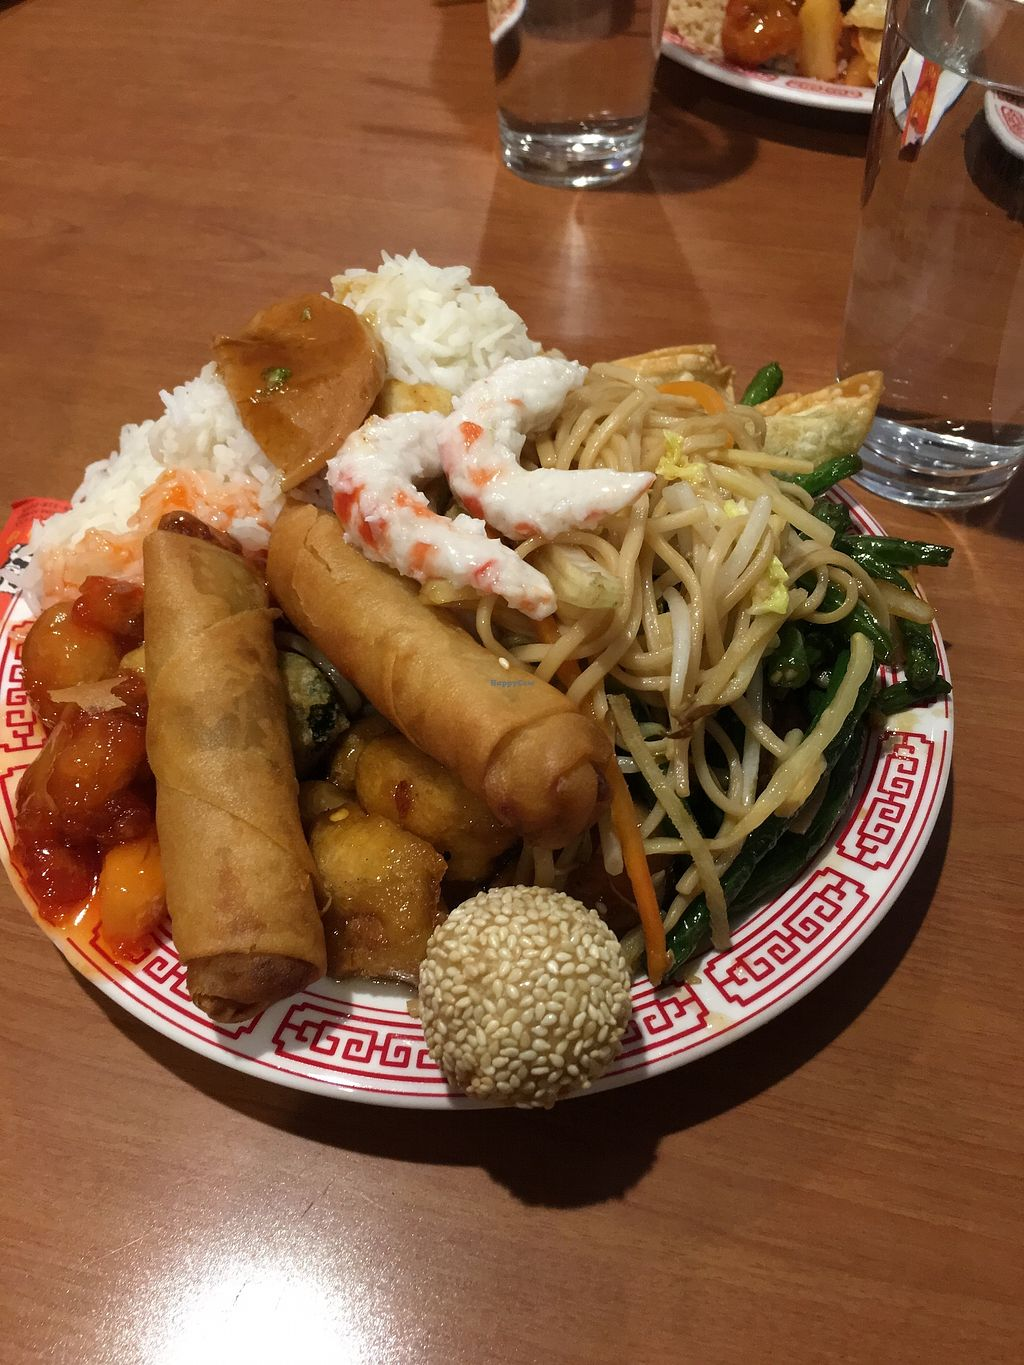 """Photo of Tsing Tao  by <a href=""""/members/profile/JaydaTaylor"""">JaydaTaylor</a> <br/>All vegan buffet plate 2/3 <br/> October 18, 2017  - <a href='/contact/abuse/image/6253/316441'>Report</a>"""